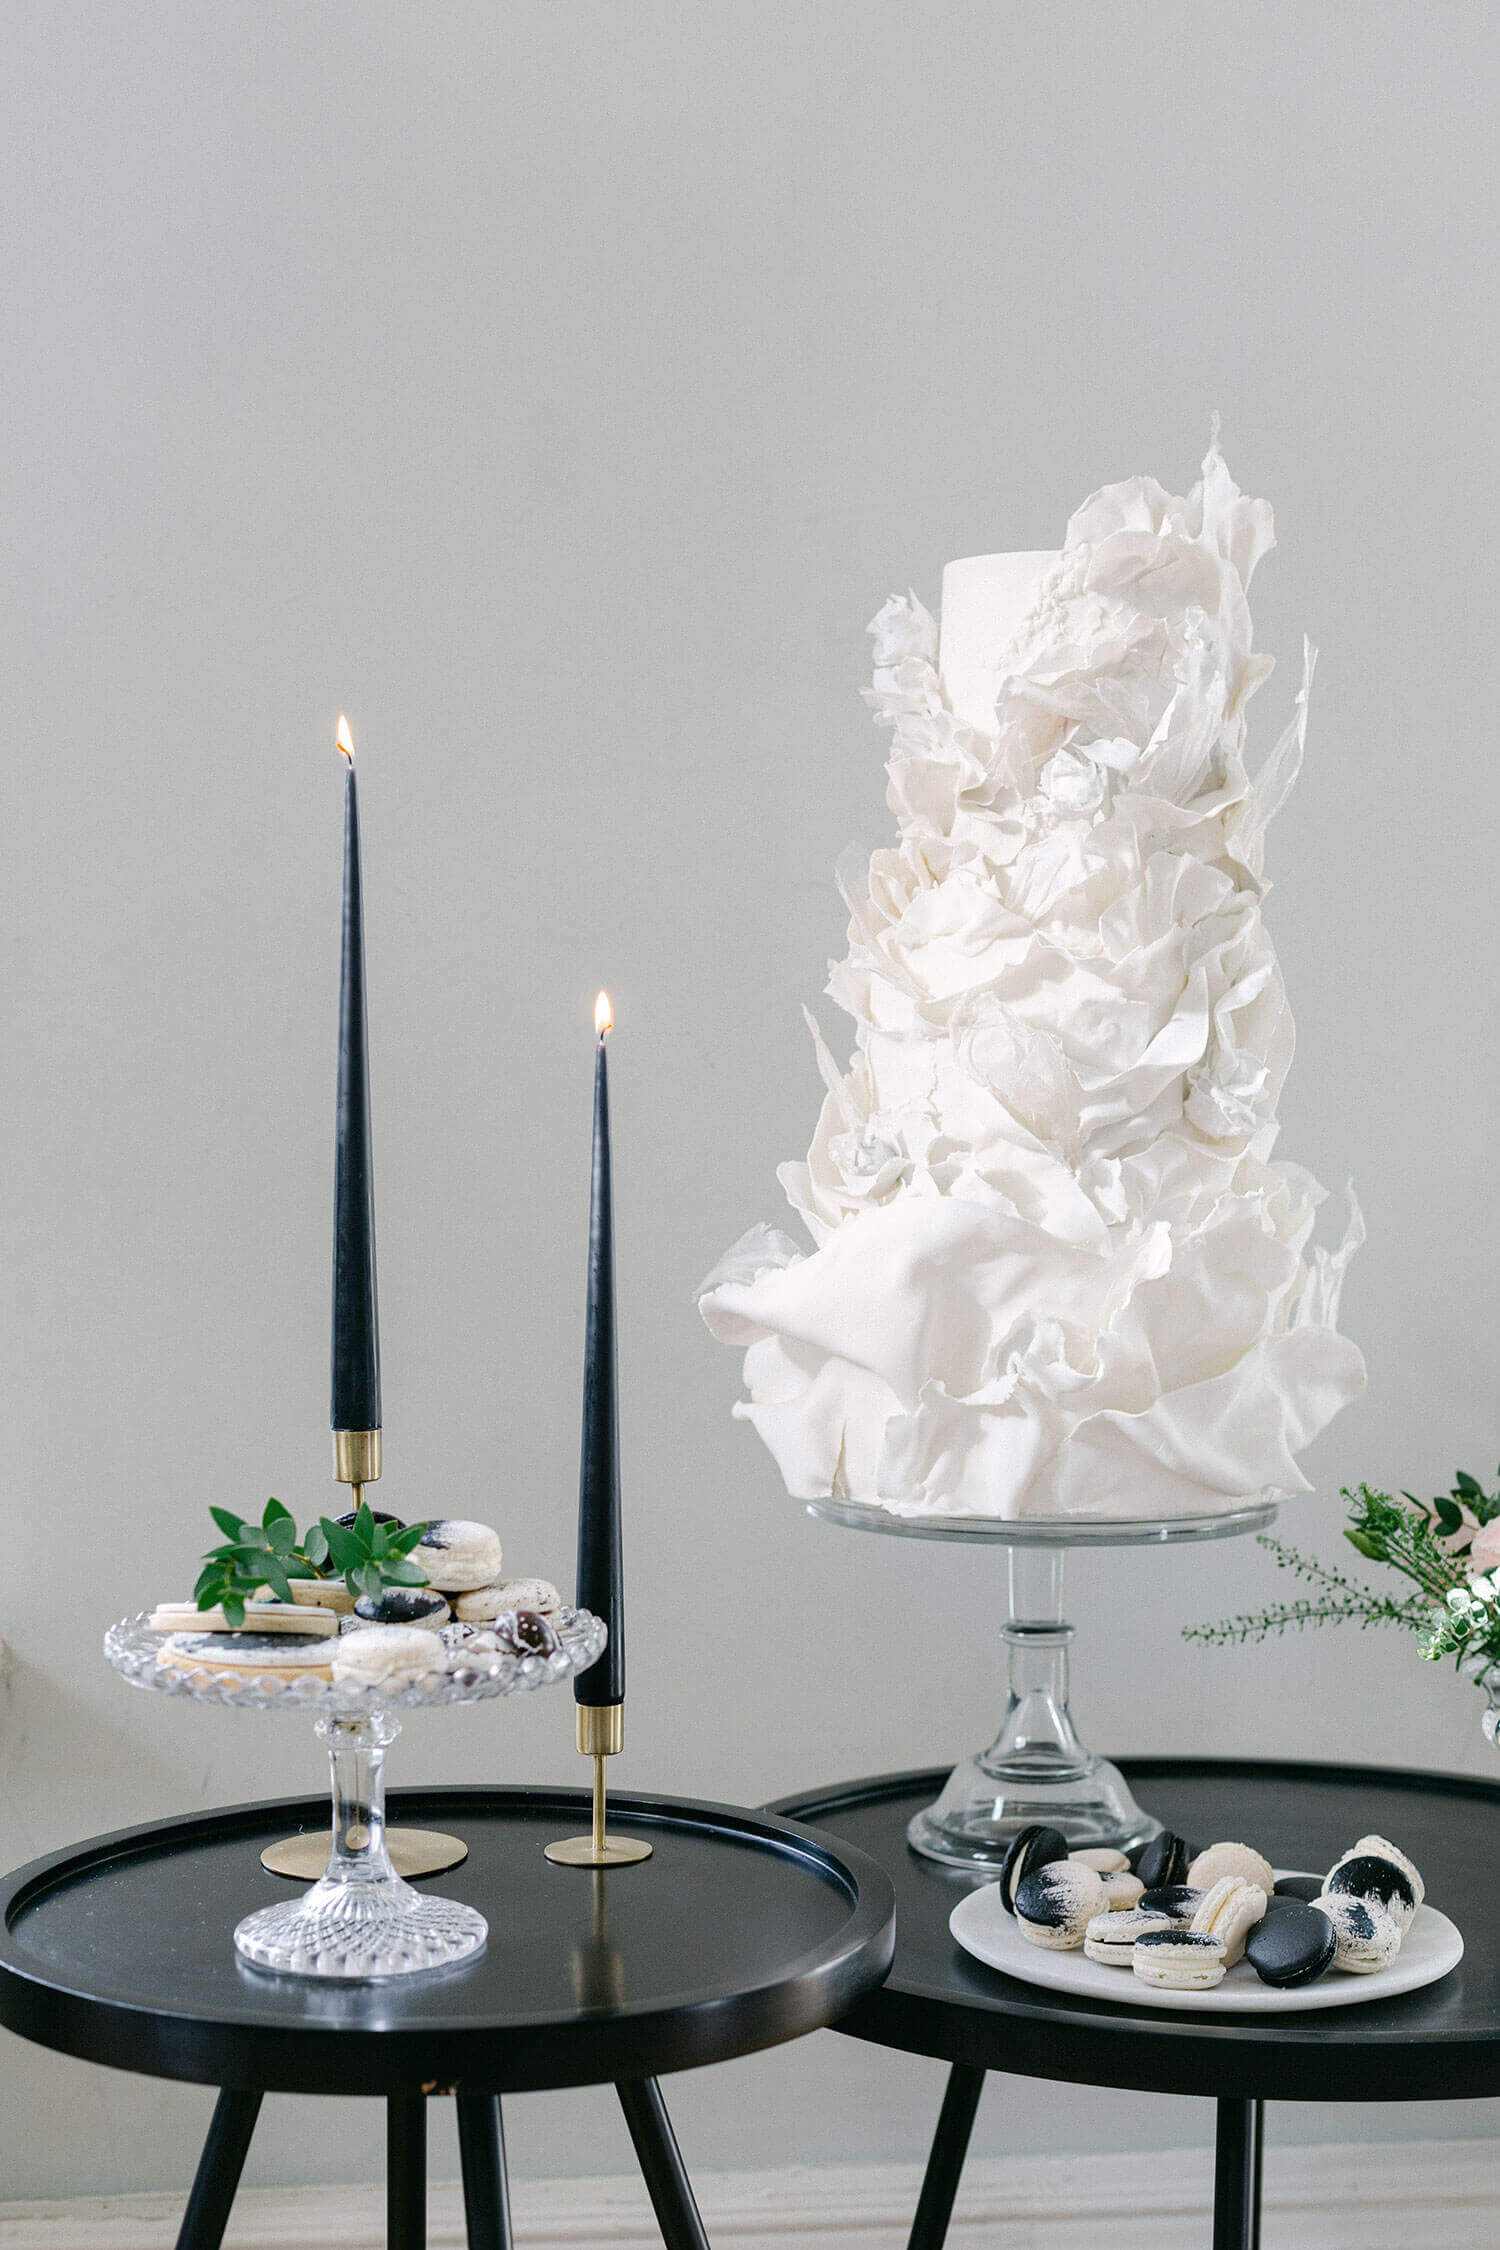 White wedding cake on black round tables with candles lit - elegant wedding planner surrey